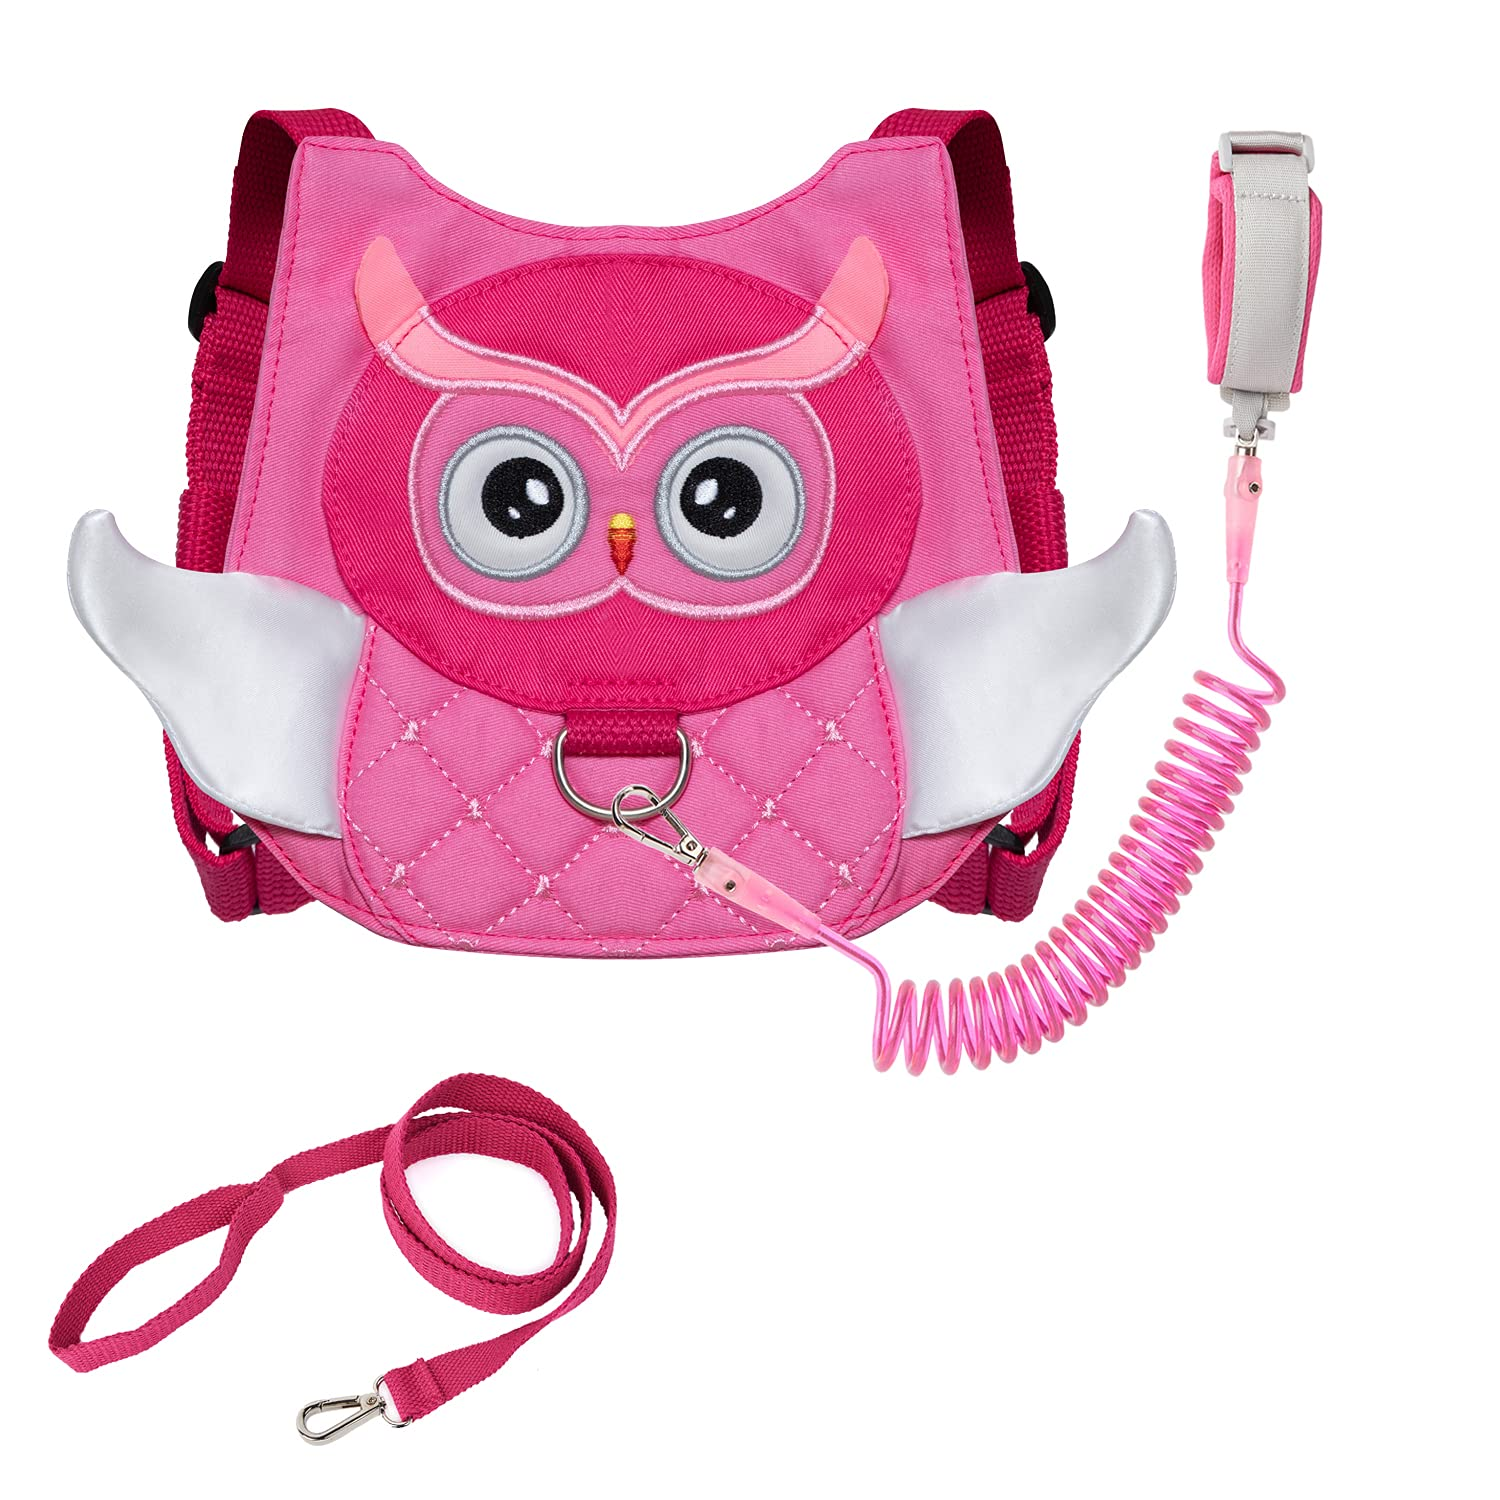 Owl Toddler Harness with Leash Child Kid Anti-Lost Wrist Link Leash Wristband (Rose)